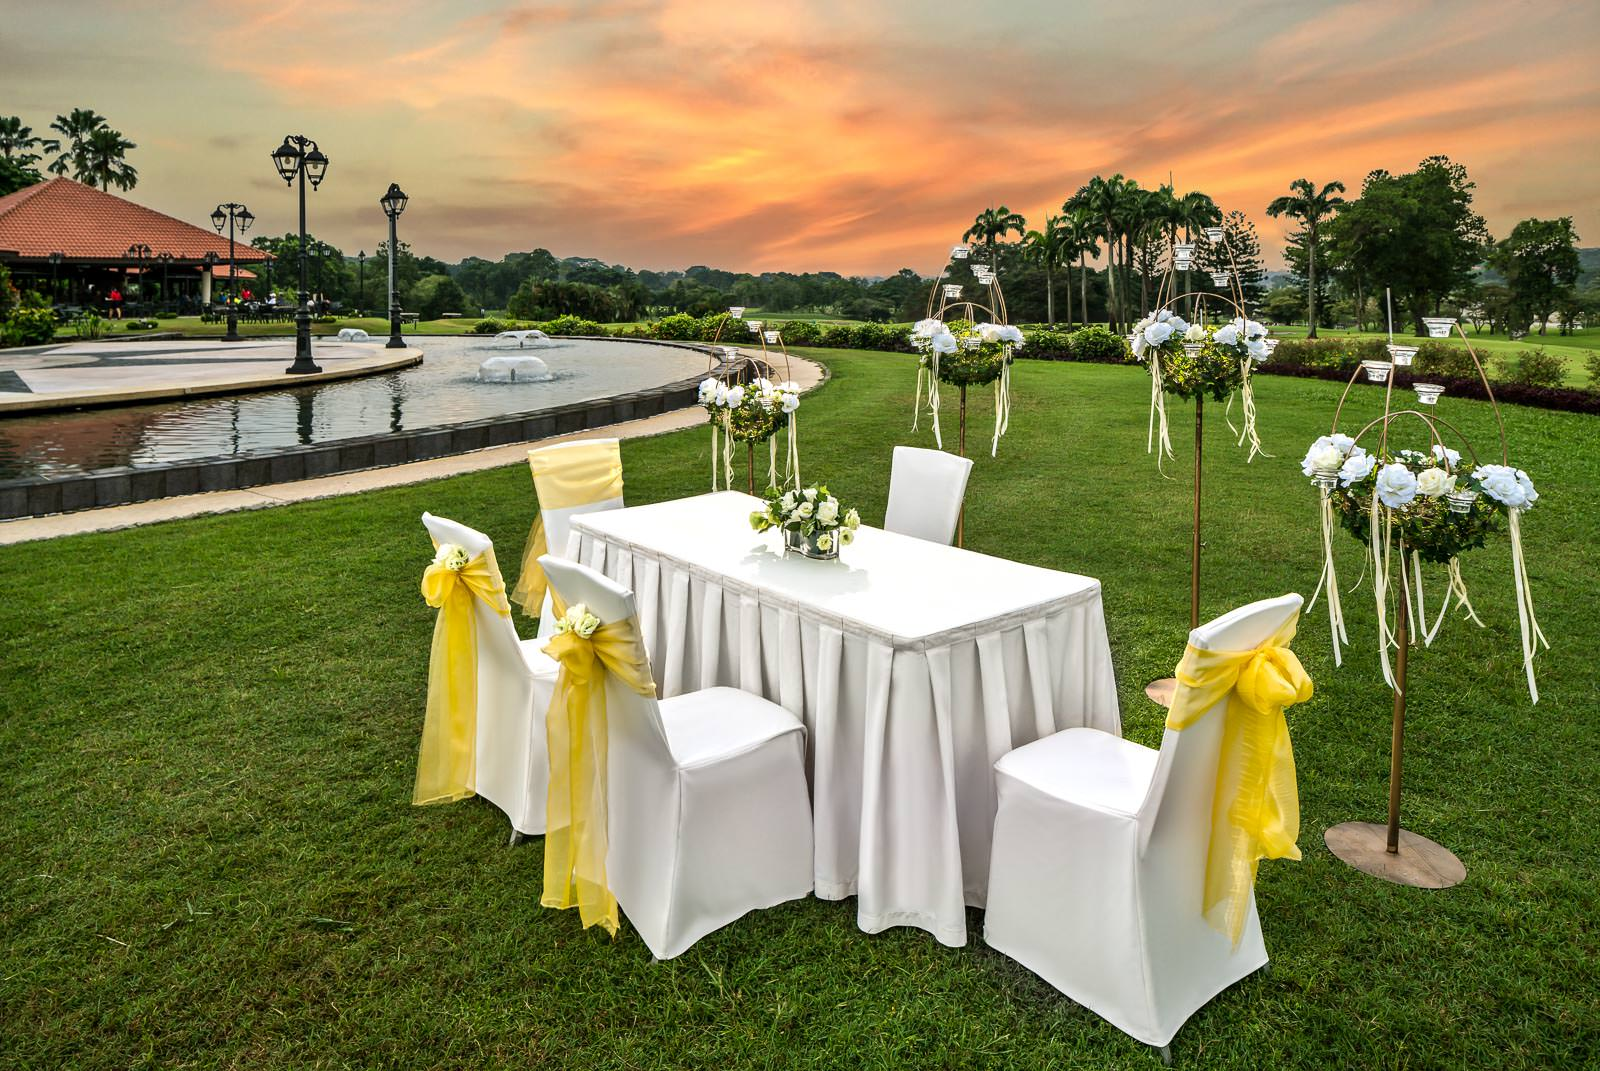 Interior photography of the seletar country club in singapore showing solemnisation table setup at dusk in Singapore